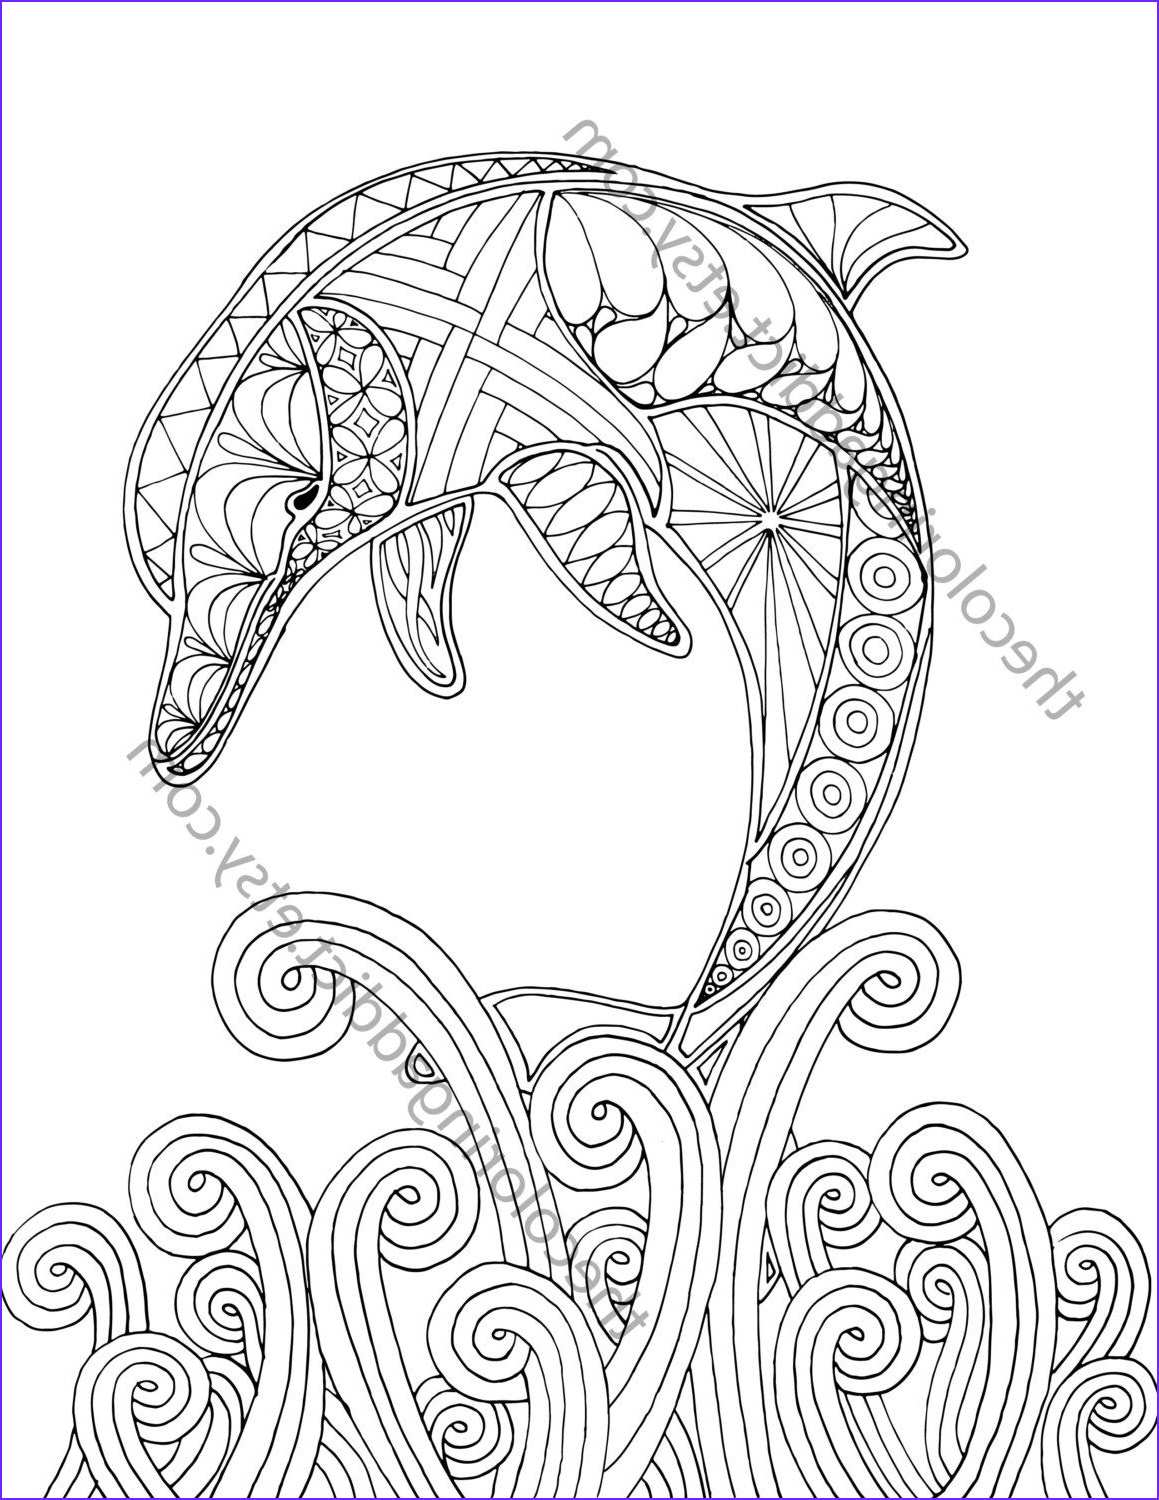 Book Of Life Coloring Pages Beautiful Collection Dolphin Coloring Page Adult Coloring Sheet Nautical